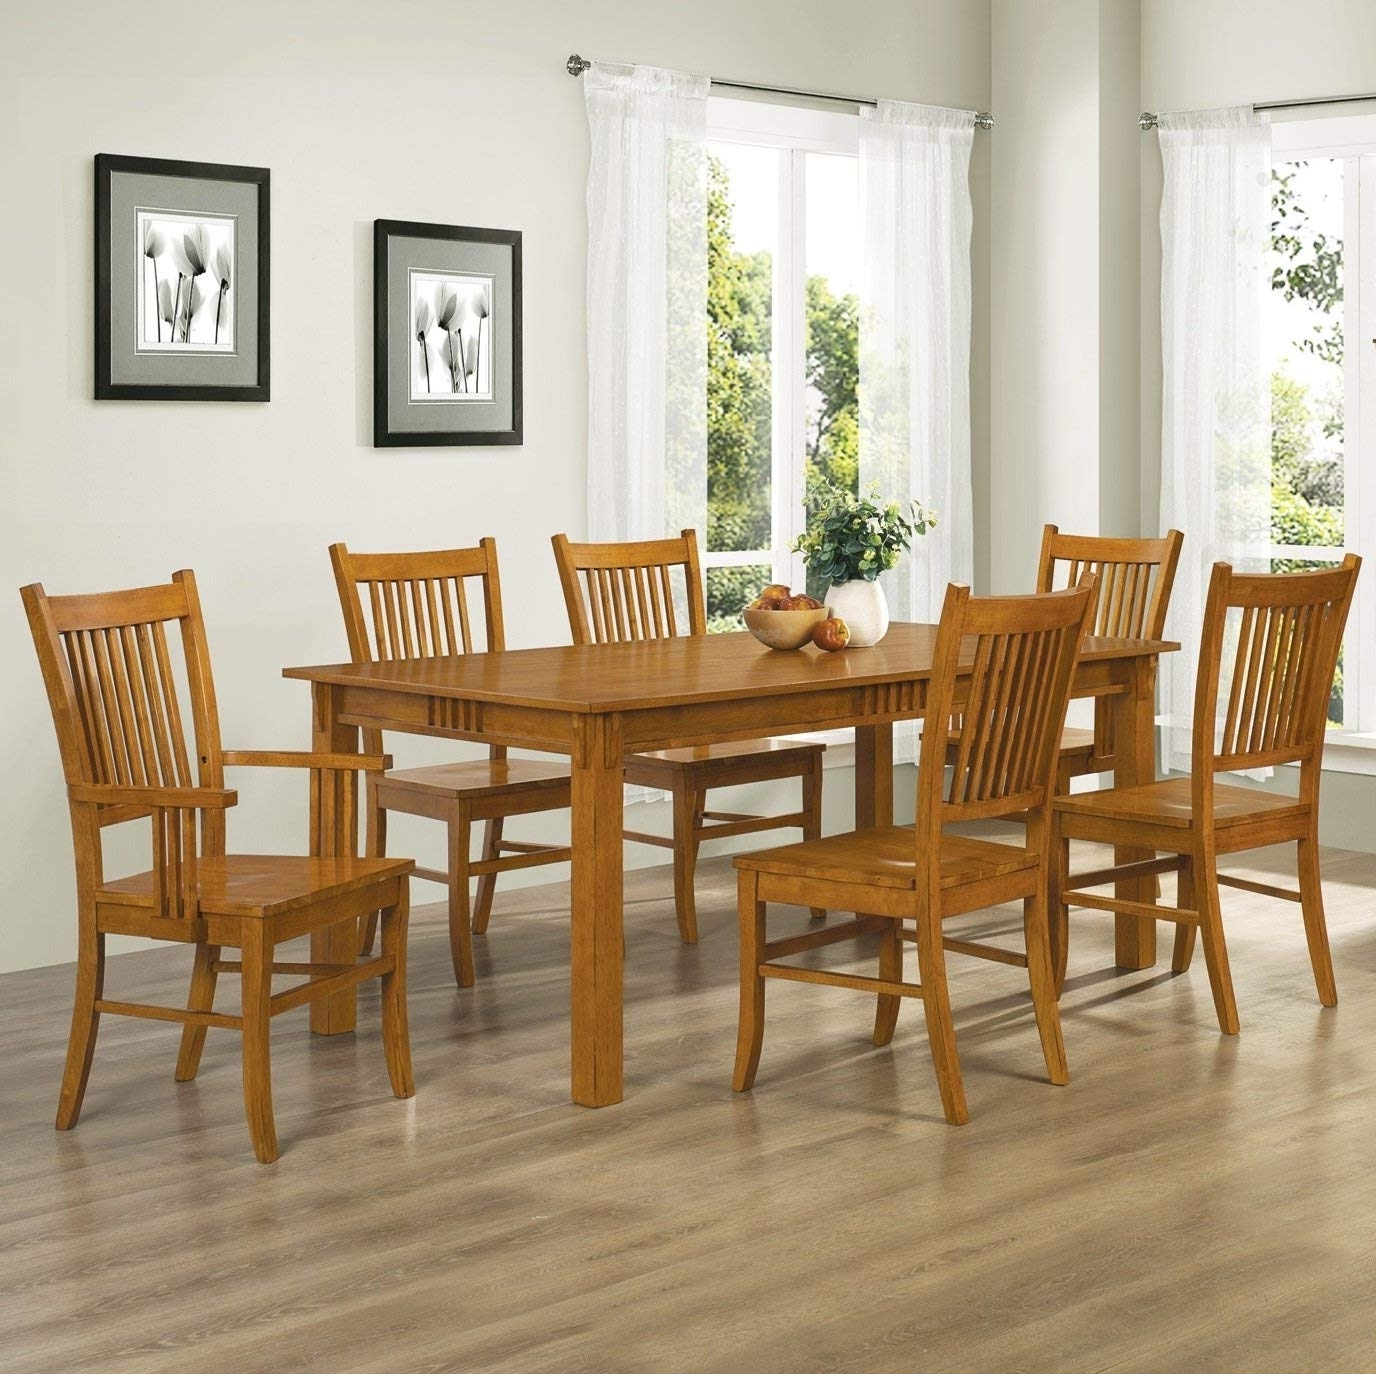 Amazon – Coaster Home Furnishings 7 Piece Mission Style Solid Within Most Recent Craftsman 5 Piece Round Dining Sets With Uph Side Chairs (View 16 of 25)